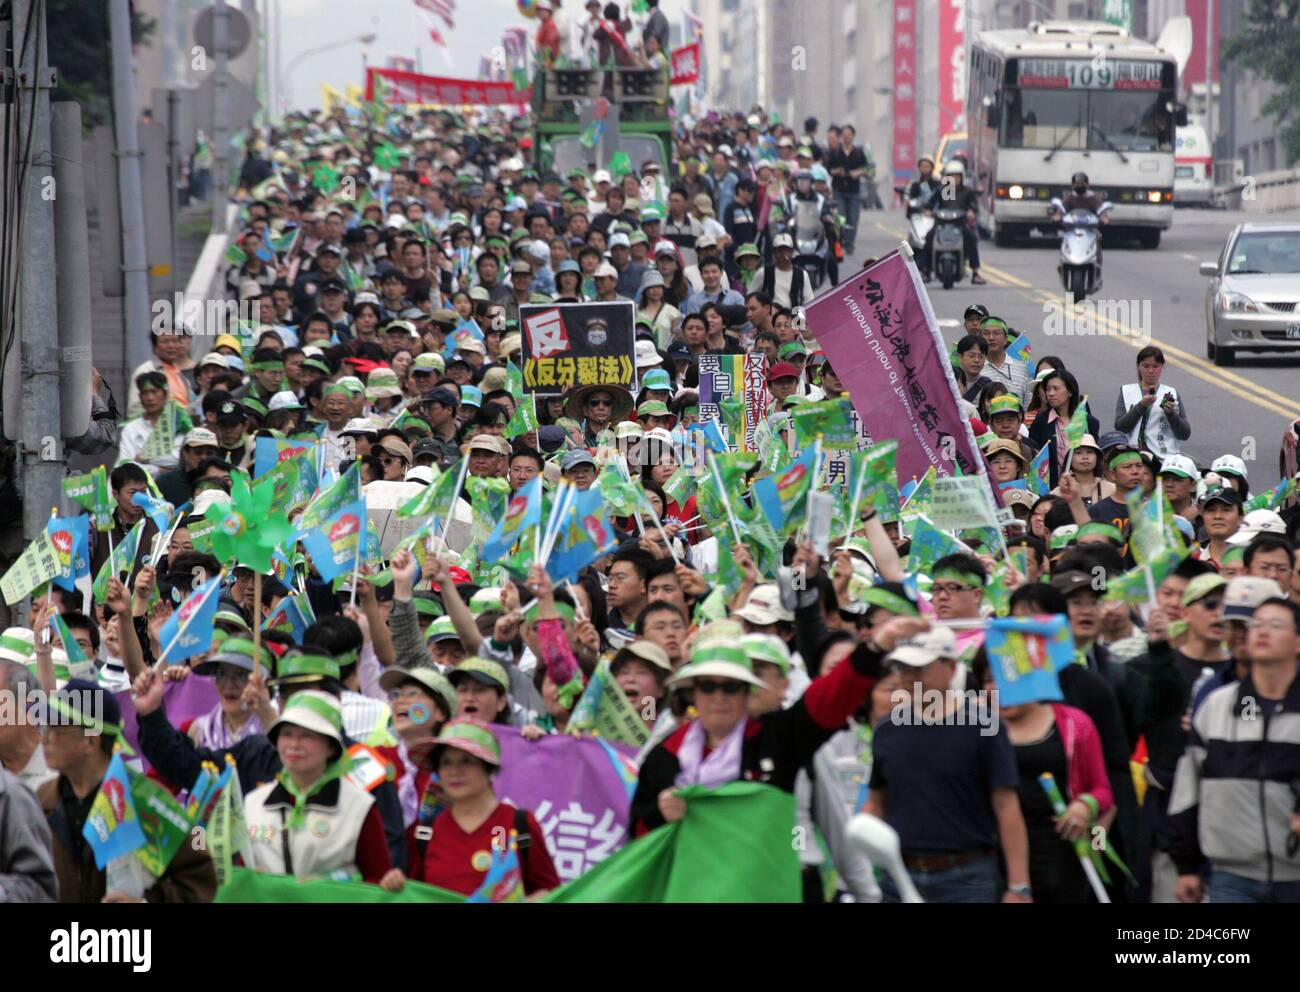 """Hundreds of thousands of people chanting """"Oppose war, Love Taiwan"""" join a protest against China's military threat in Taipei March 26, 2005. Organisers aimed to rally one million people in a show of people power against Beijing's anti-secession law, which sanctions the use of force against the island, but Taipei police estimated the crowd at just more than 230,000 so far. REUTERS/Richard Chung  TW/CCK Stock Photo"""